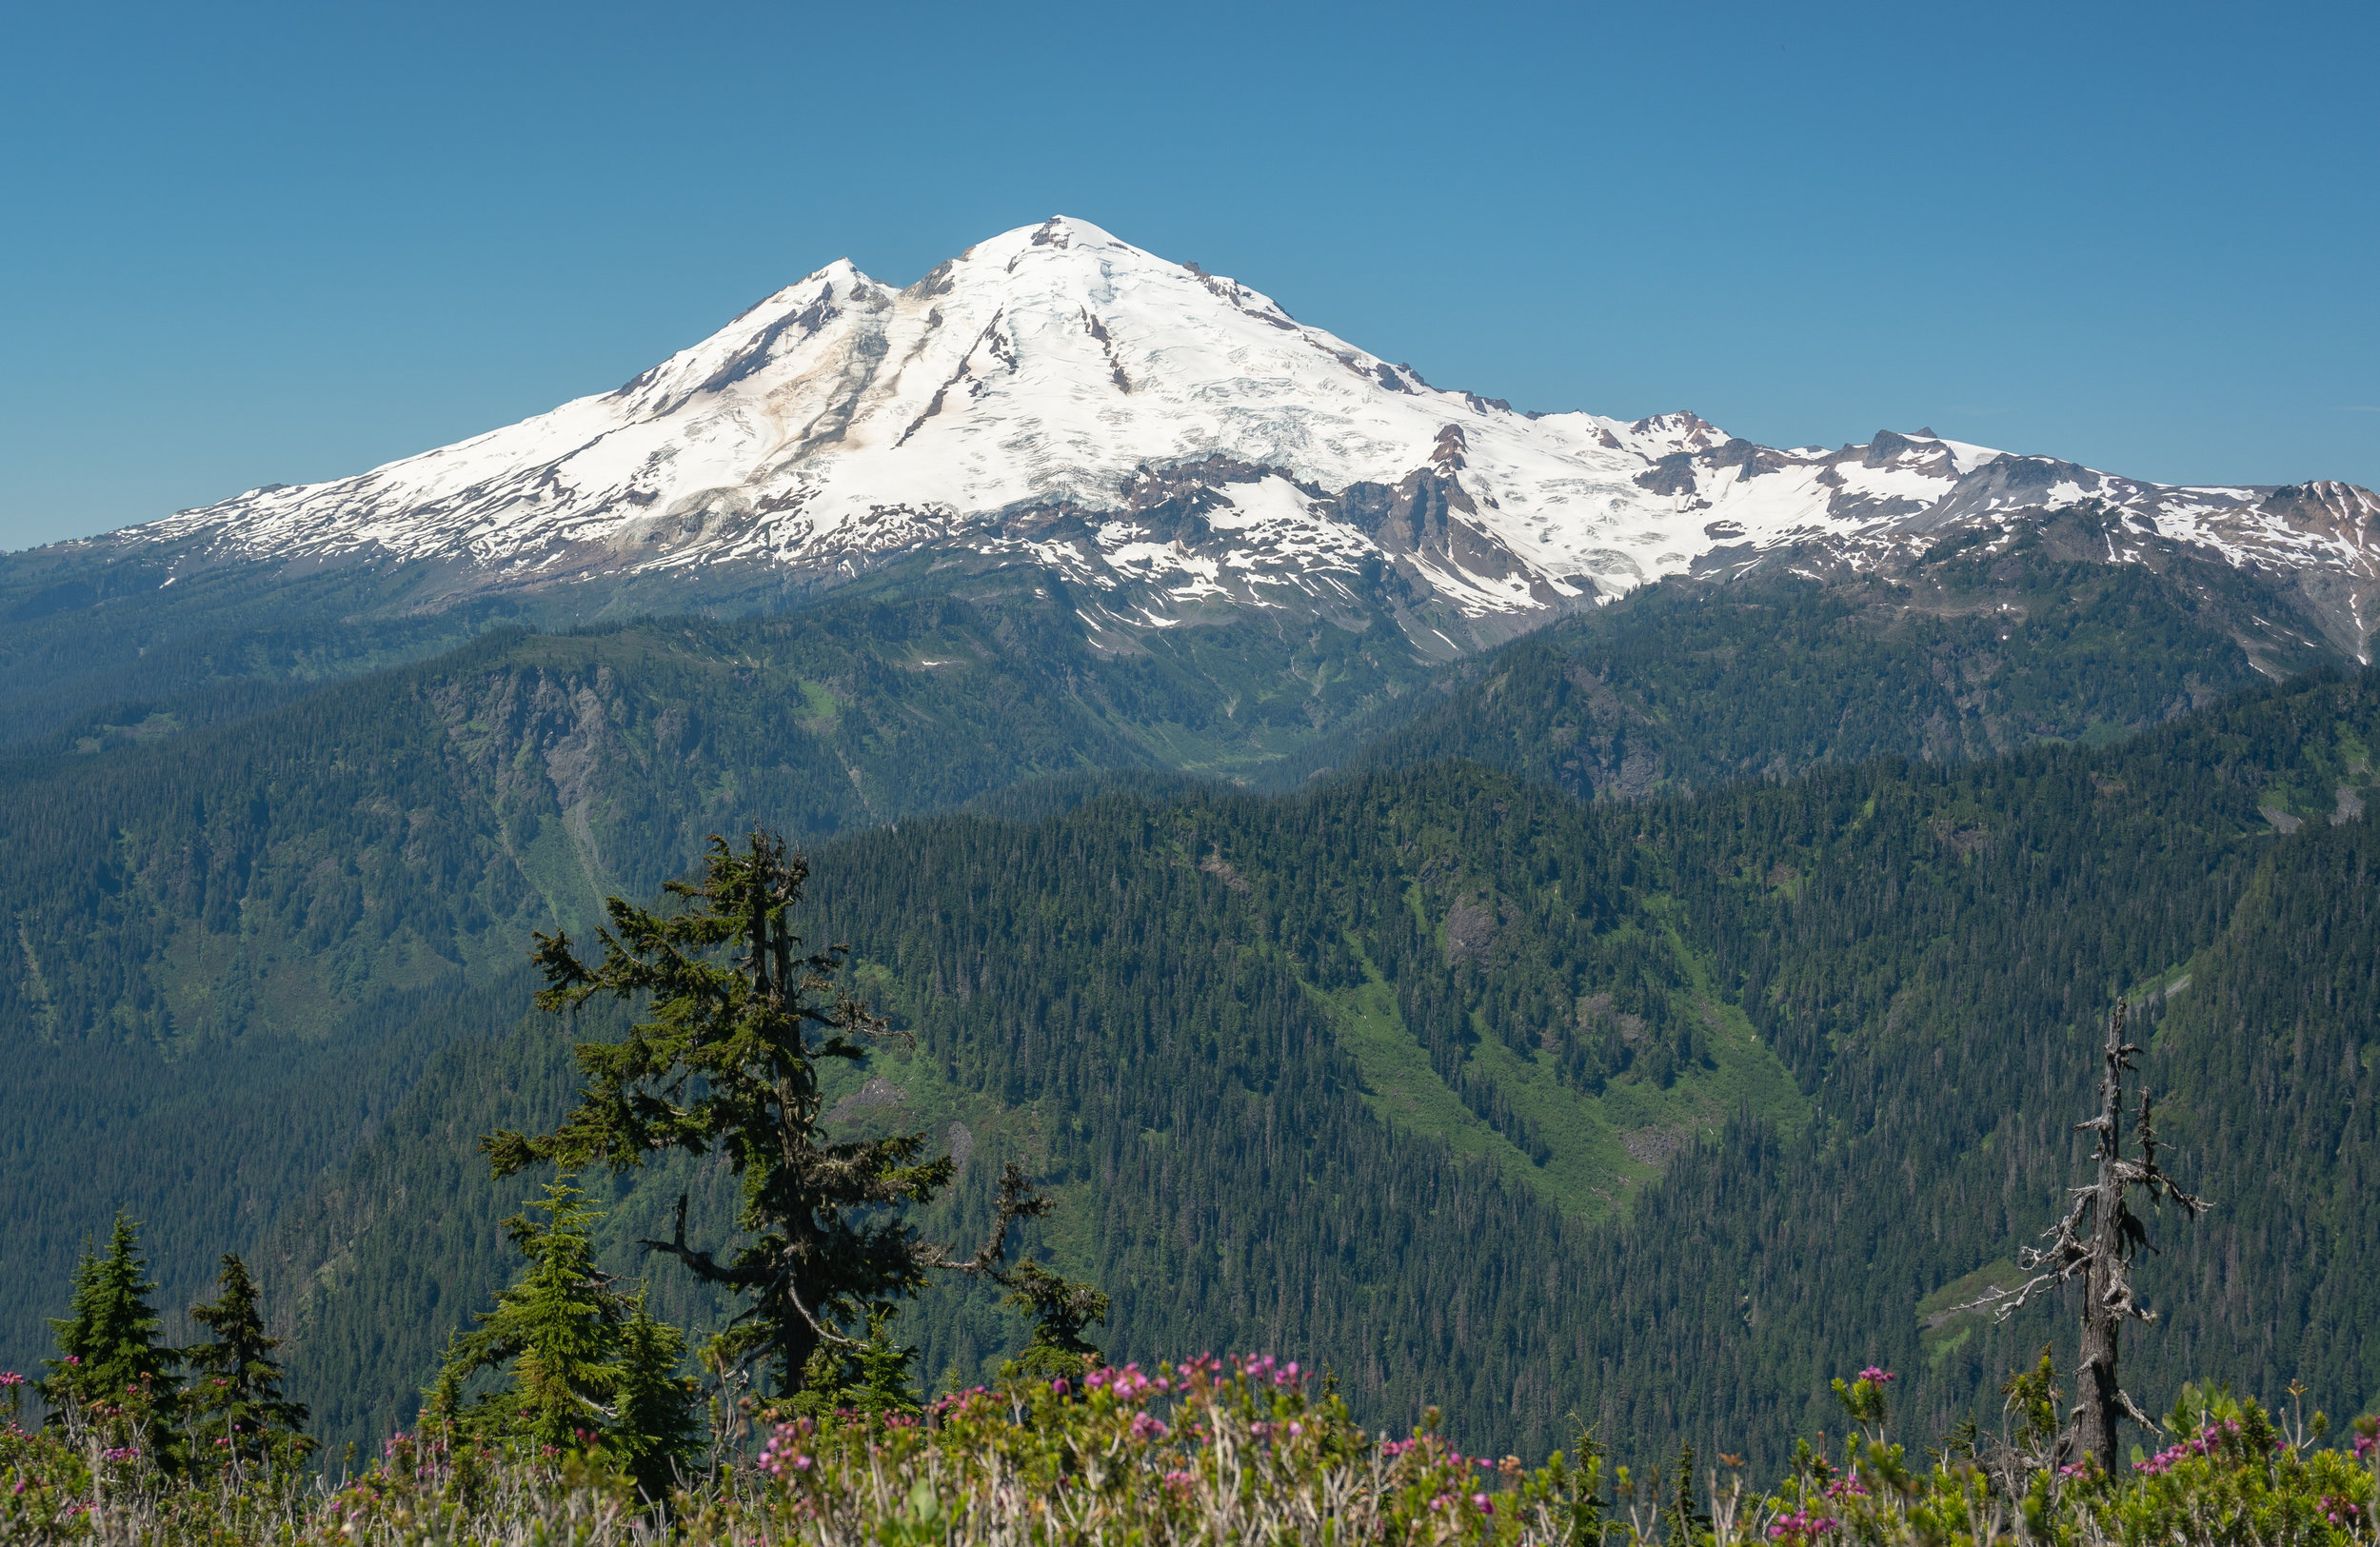 Looking west to Mount Baker, with mountain heather in the foreground